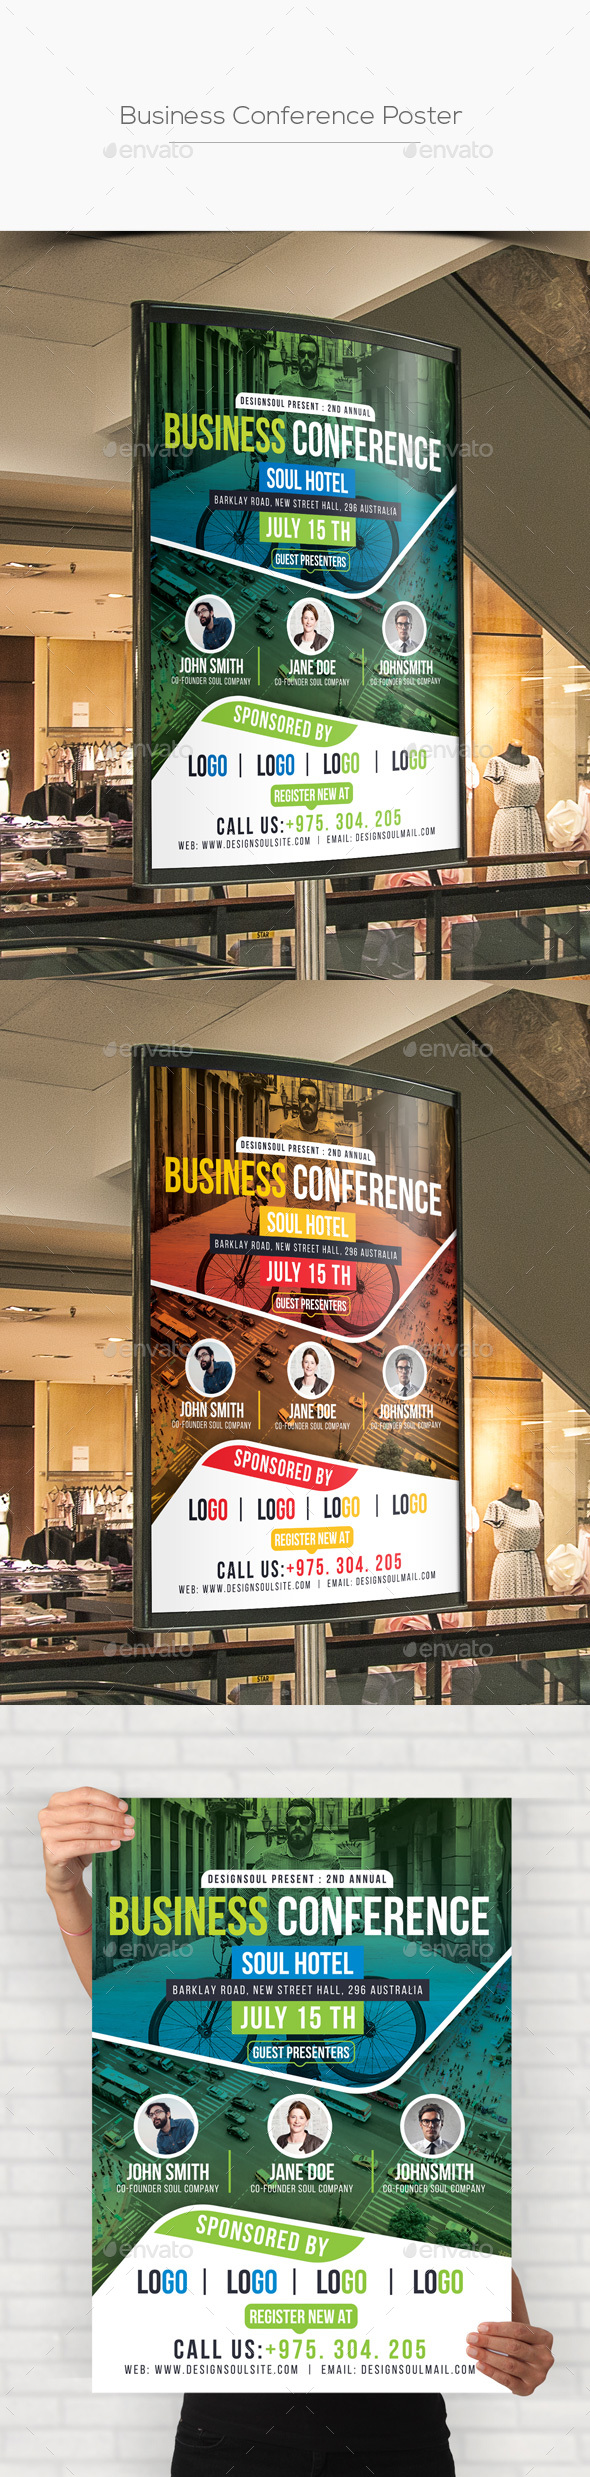 Business Conference Poster Template - Signage Print Templates